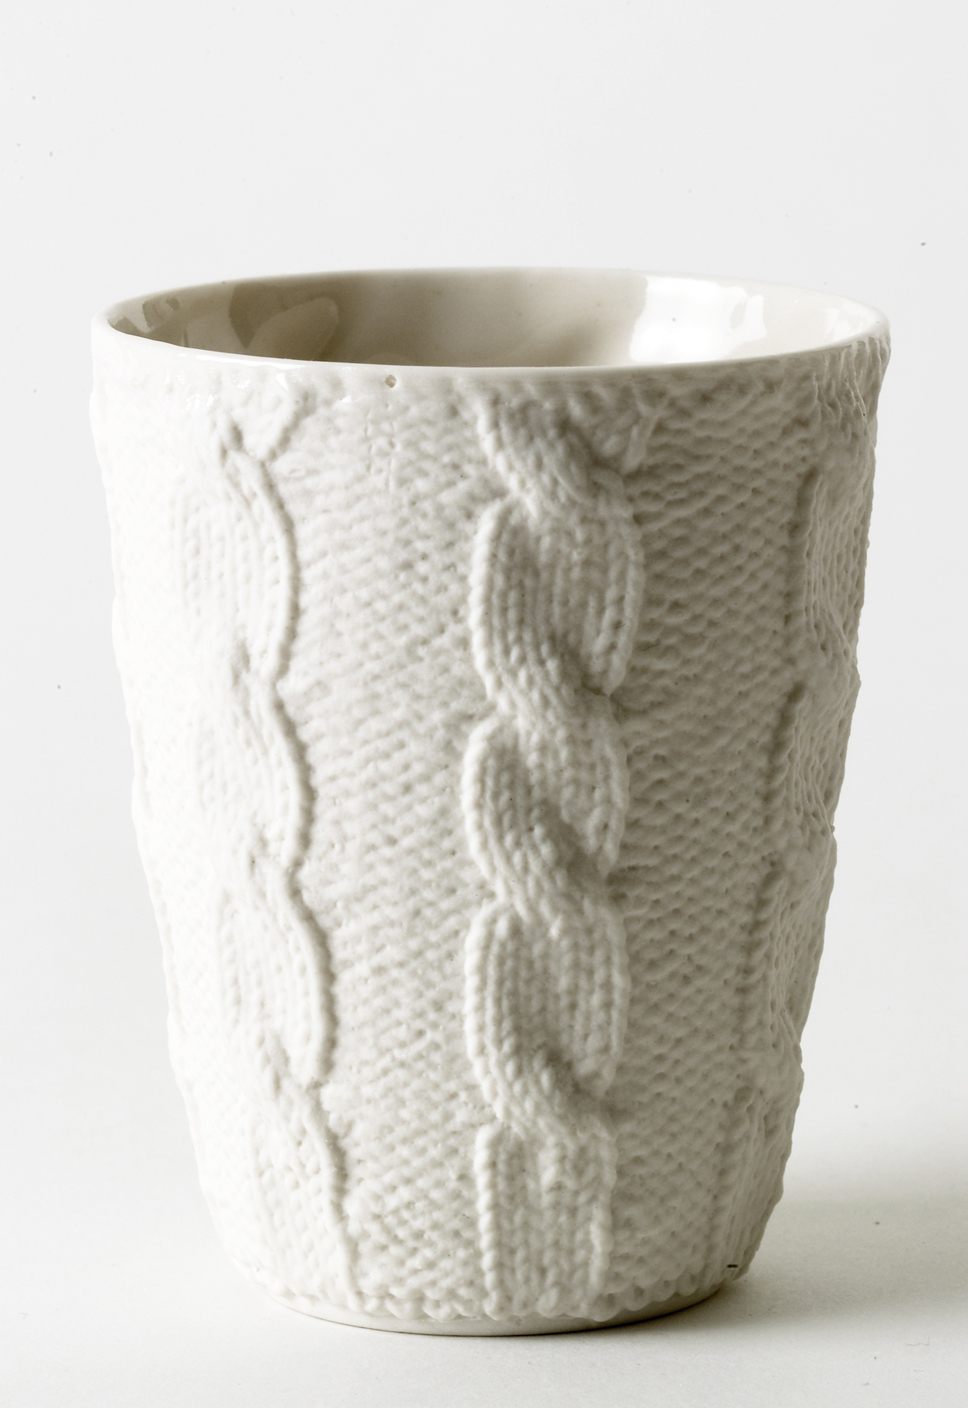 Cable Porcelain Cup by Annette Bugansky